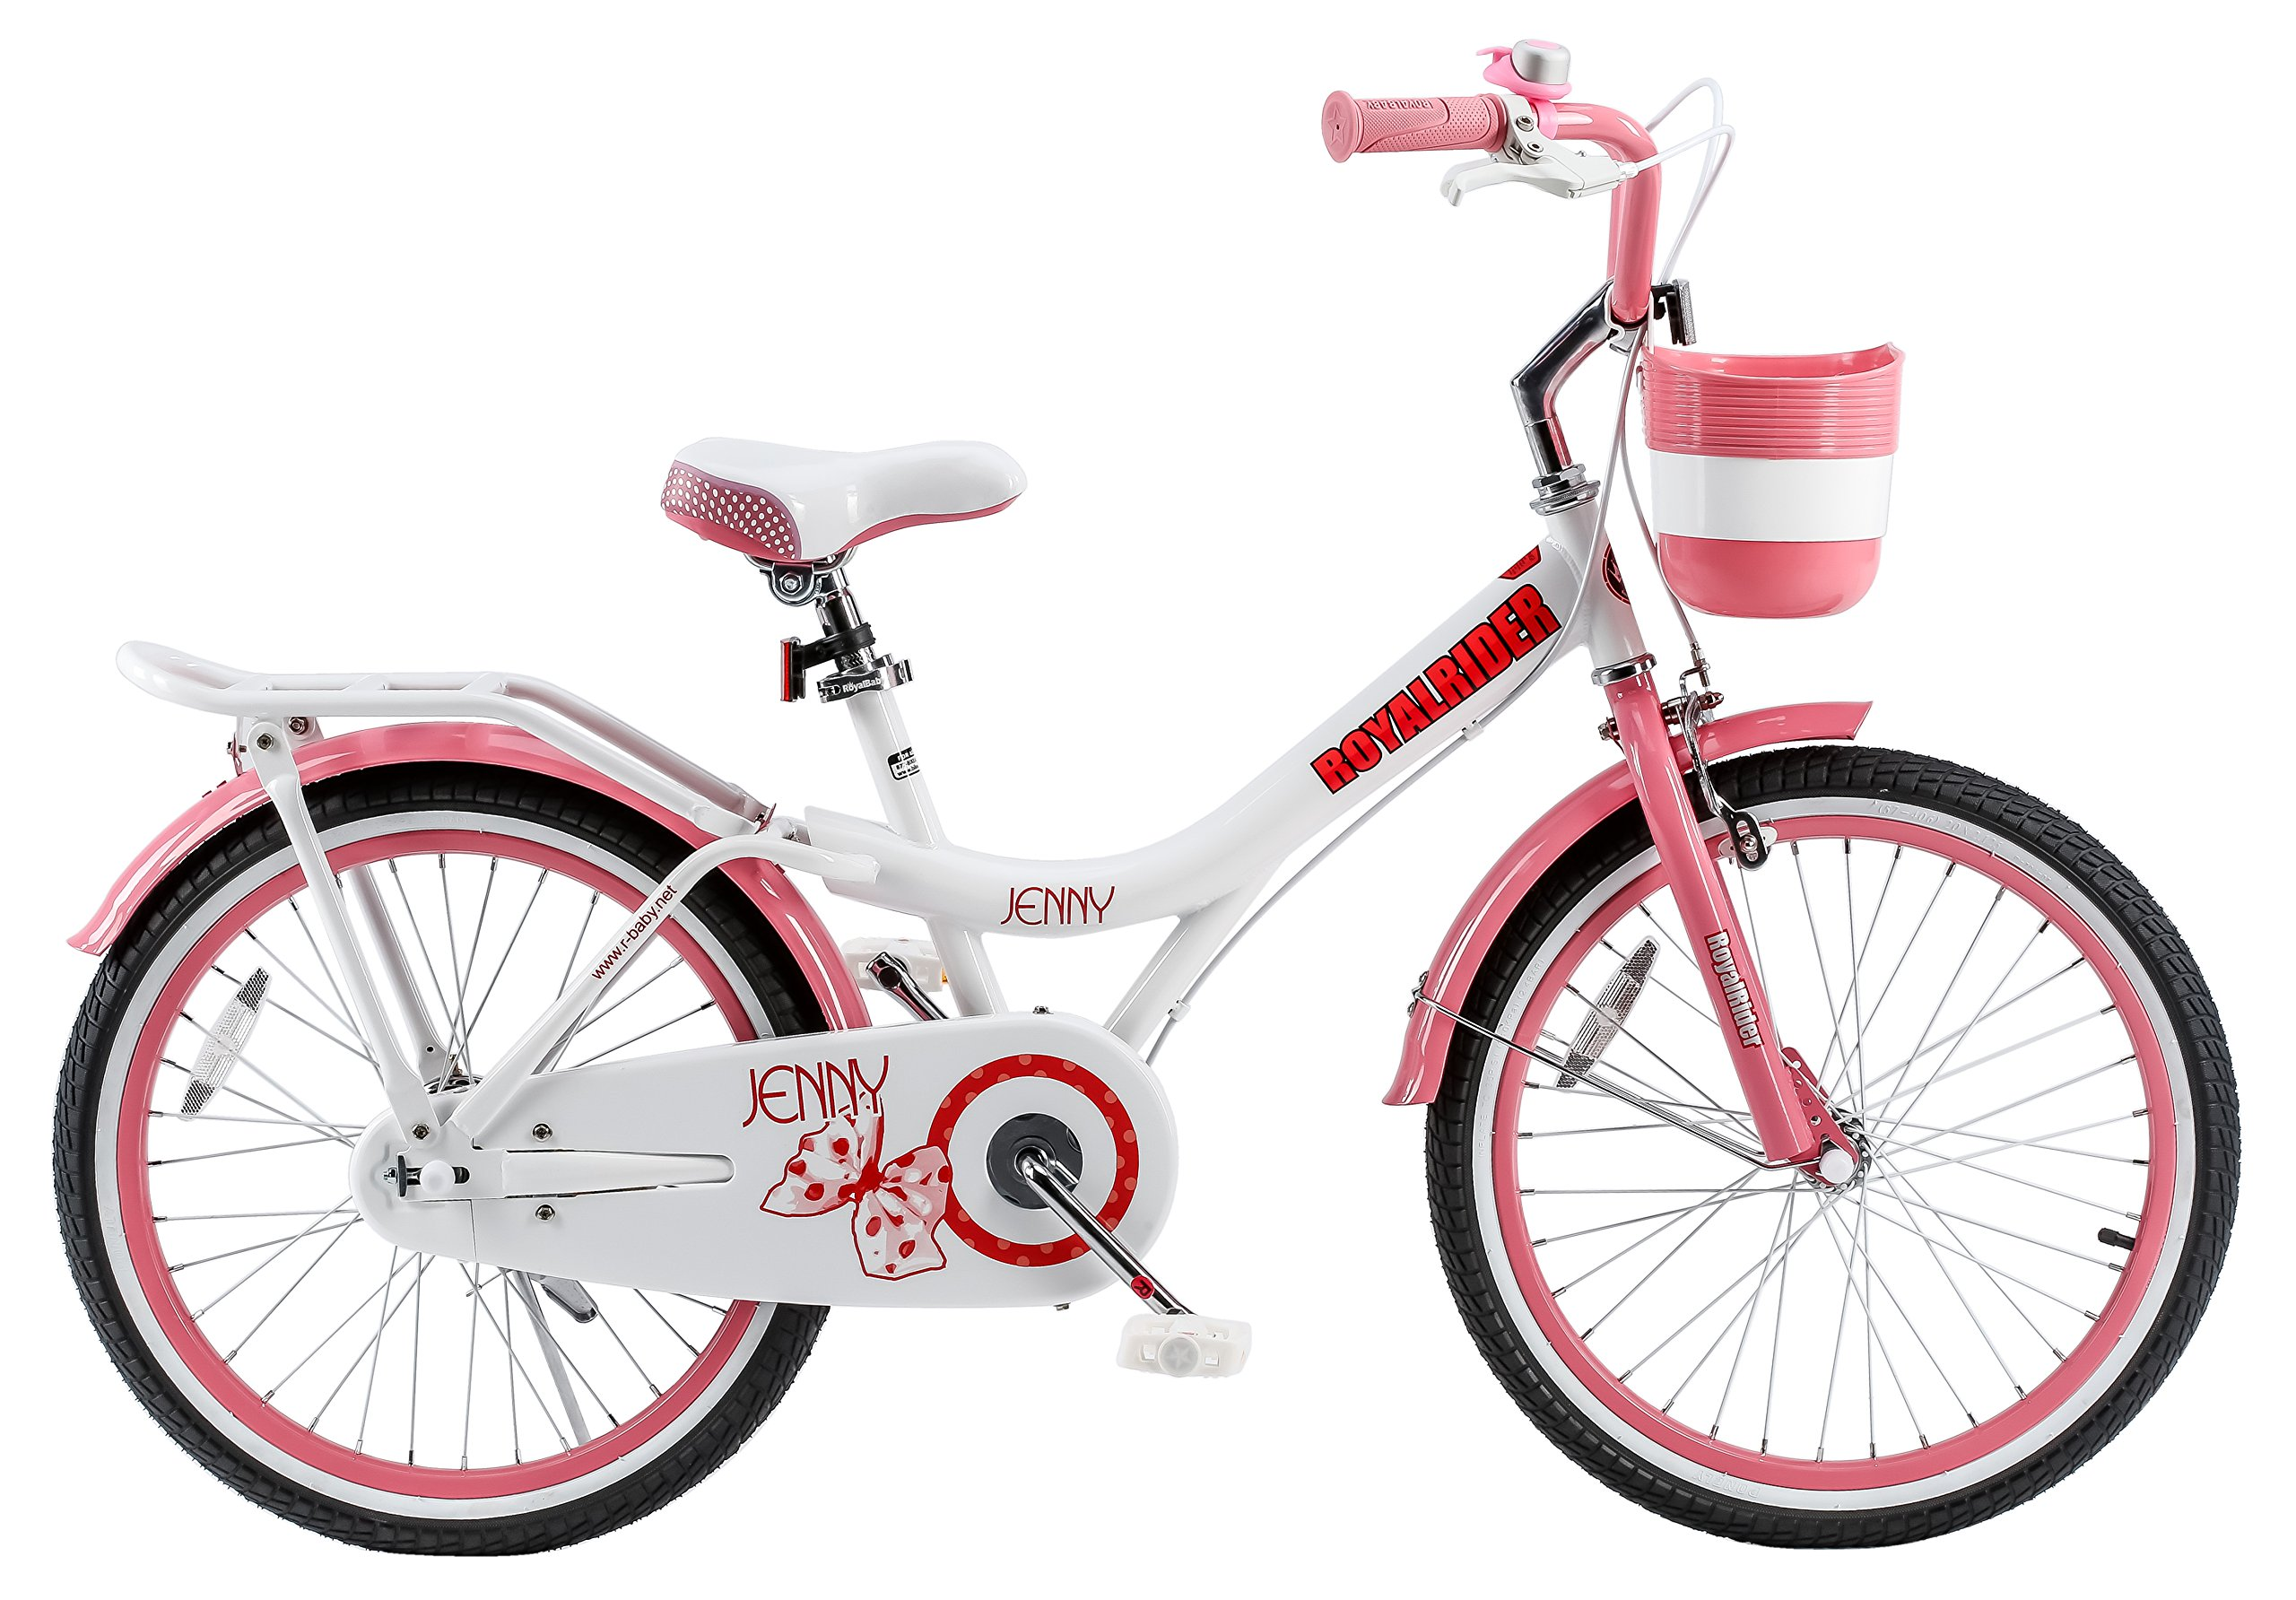 RoyalBaby Jenny Princess Pink Girl's Bike with Kickstand and Basket, White/Pink by Royalbaby